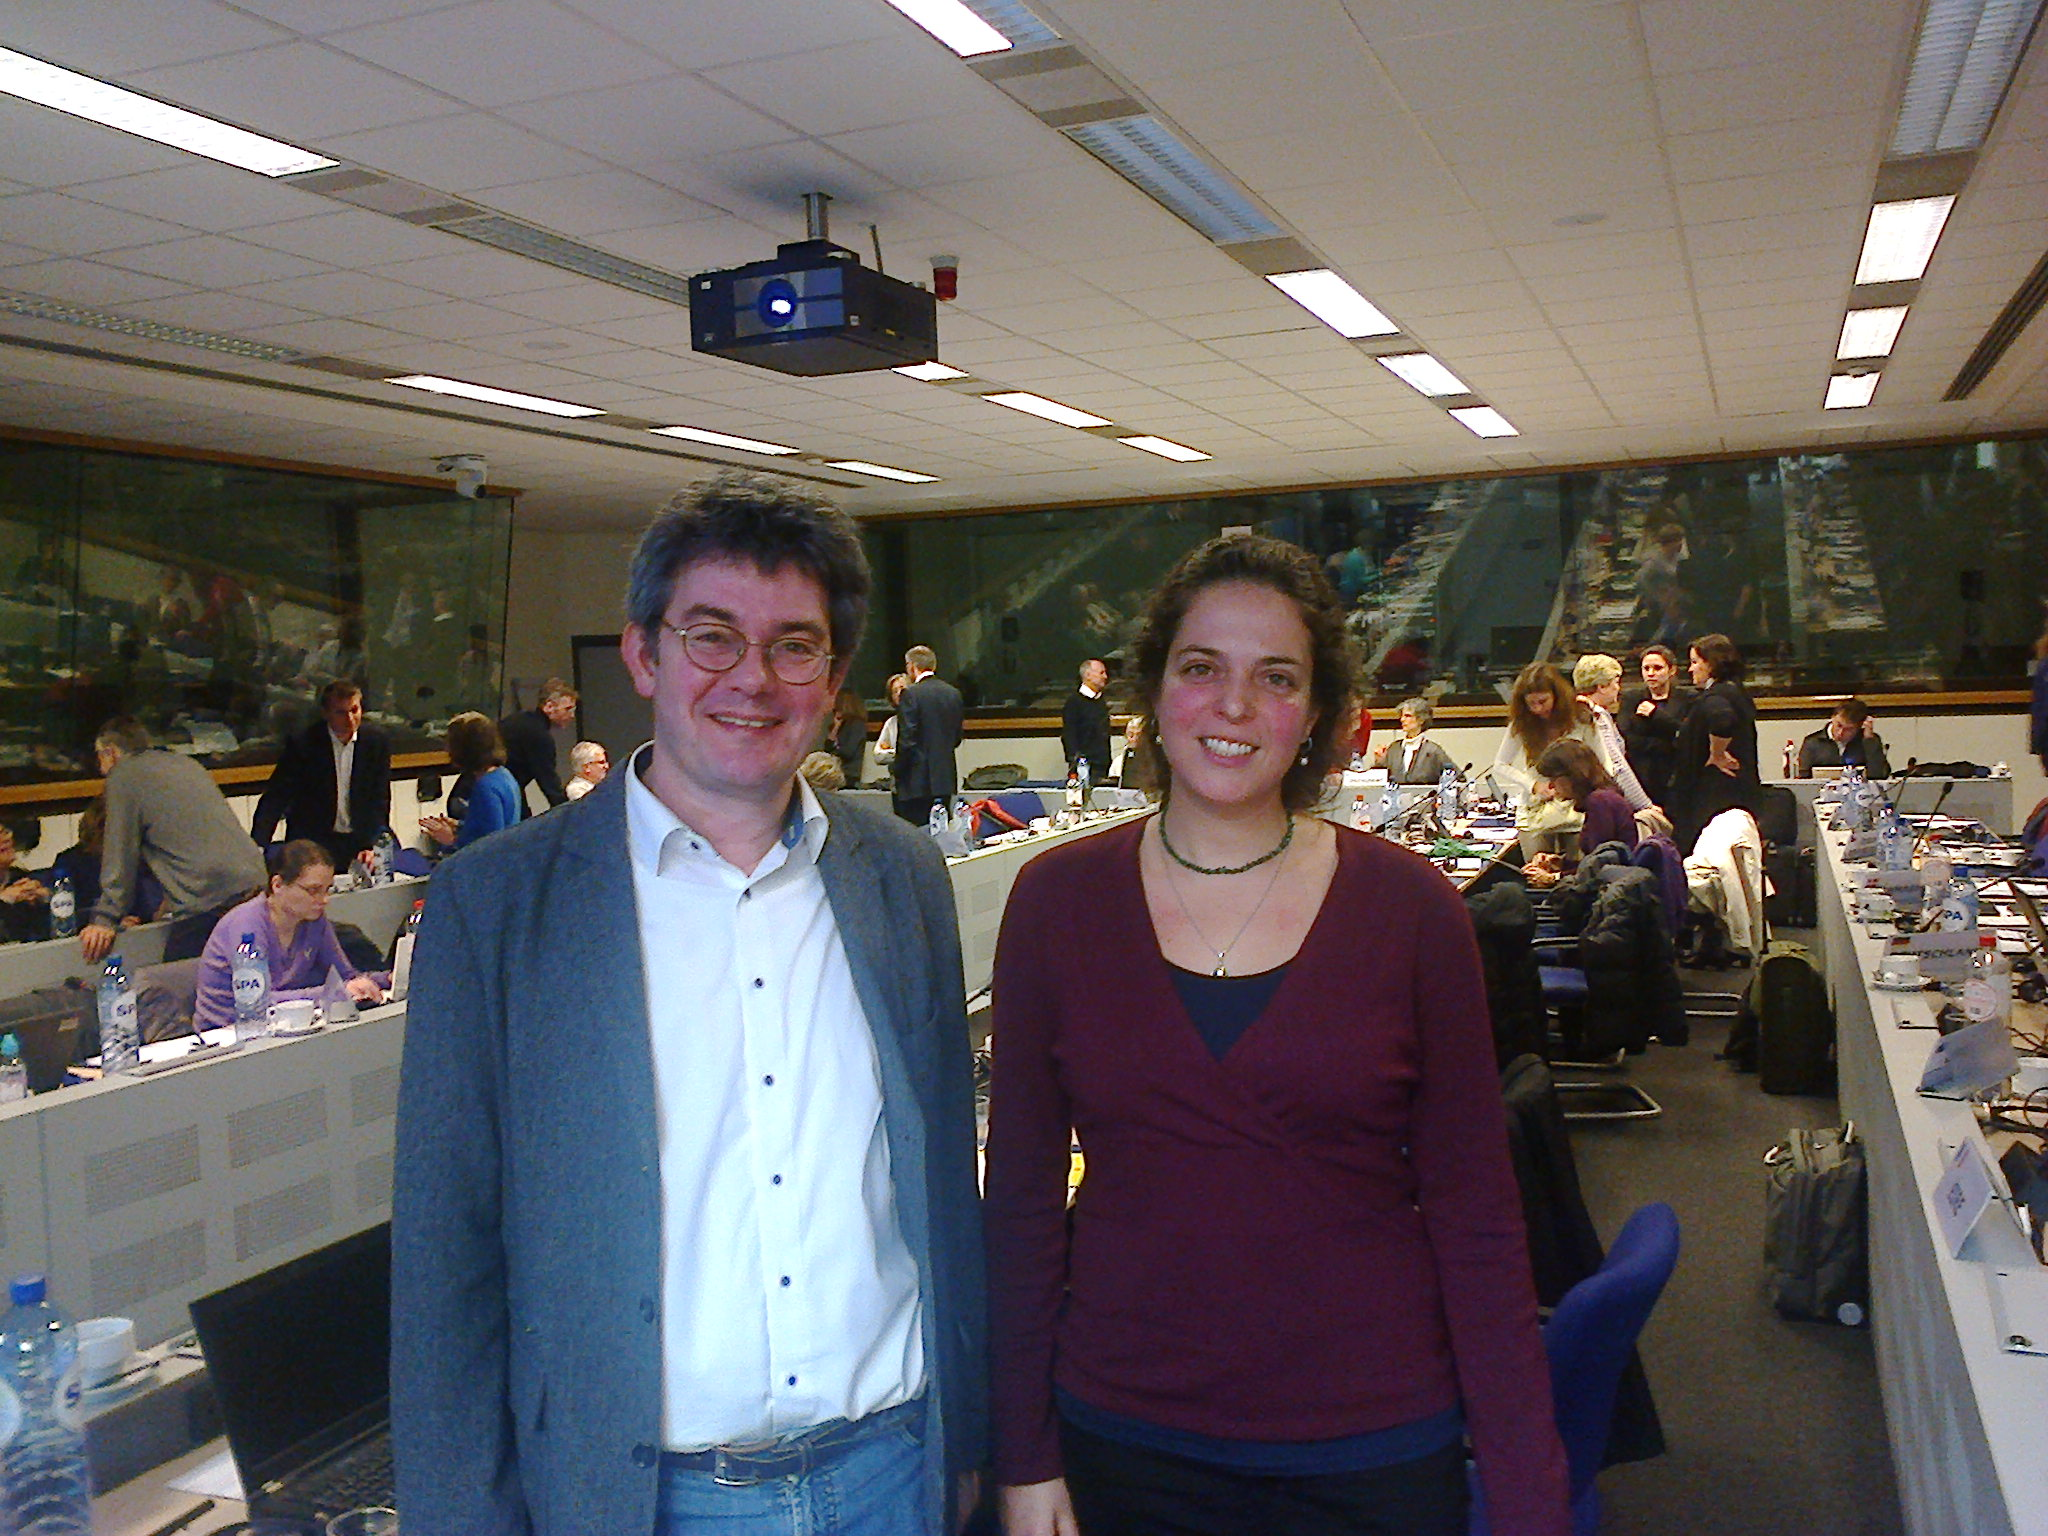 Carolina Di Paolo and Henner Hollert at the WG Chemicals Meeting-Water Framework Directive (25-26 February 2015)